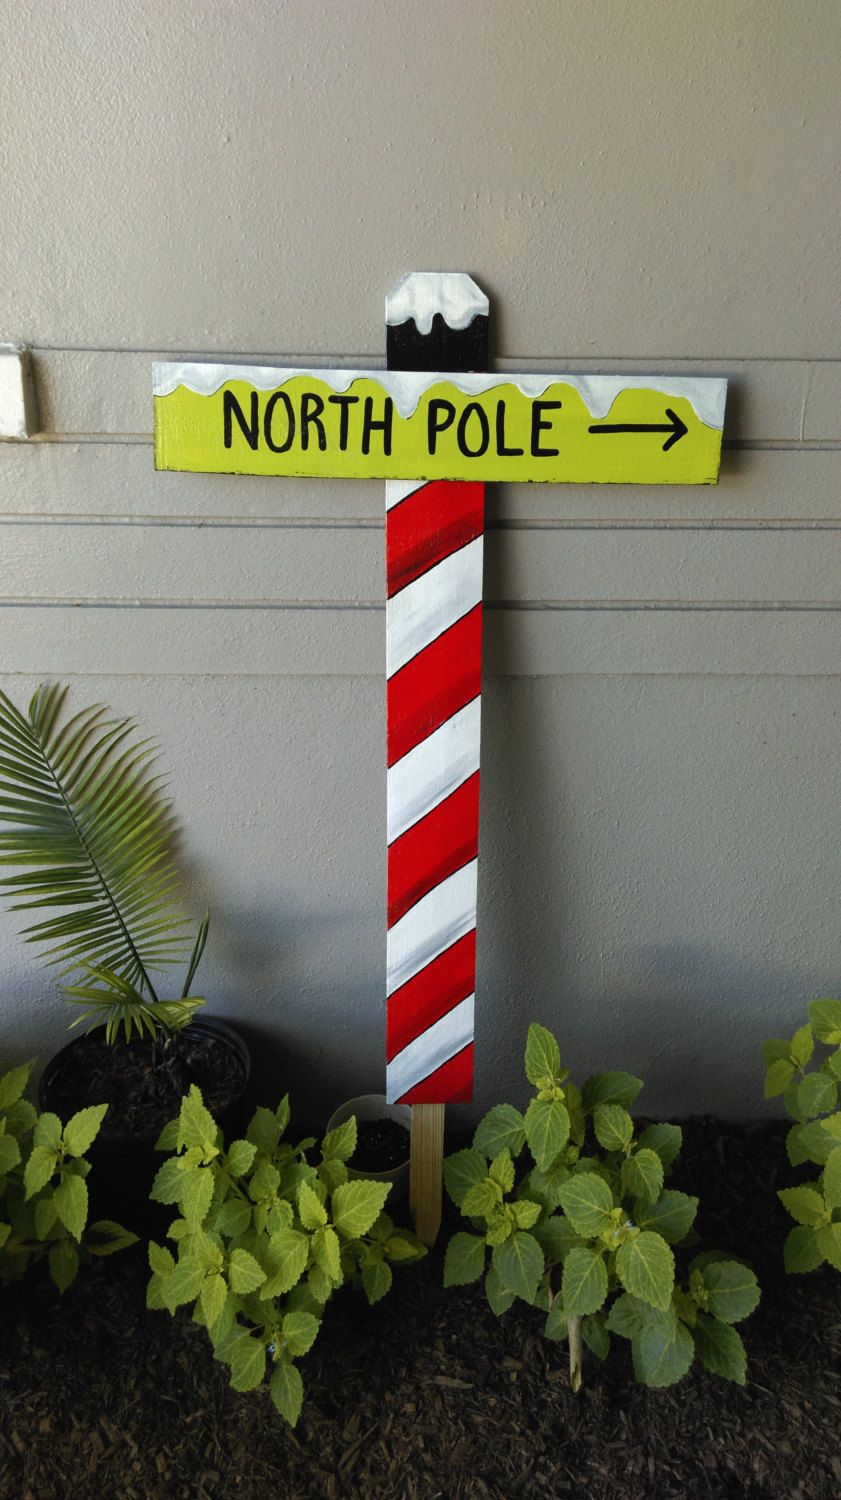 Wood yard decorations - 36 X Mas Christmas North Pole Sign Yard Art Decor Wood Reclaimed Green Red